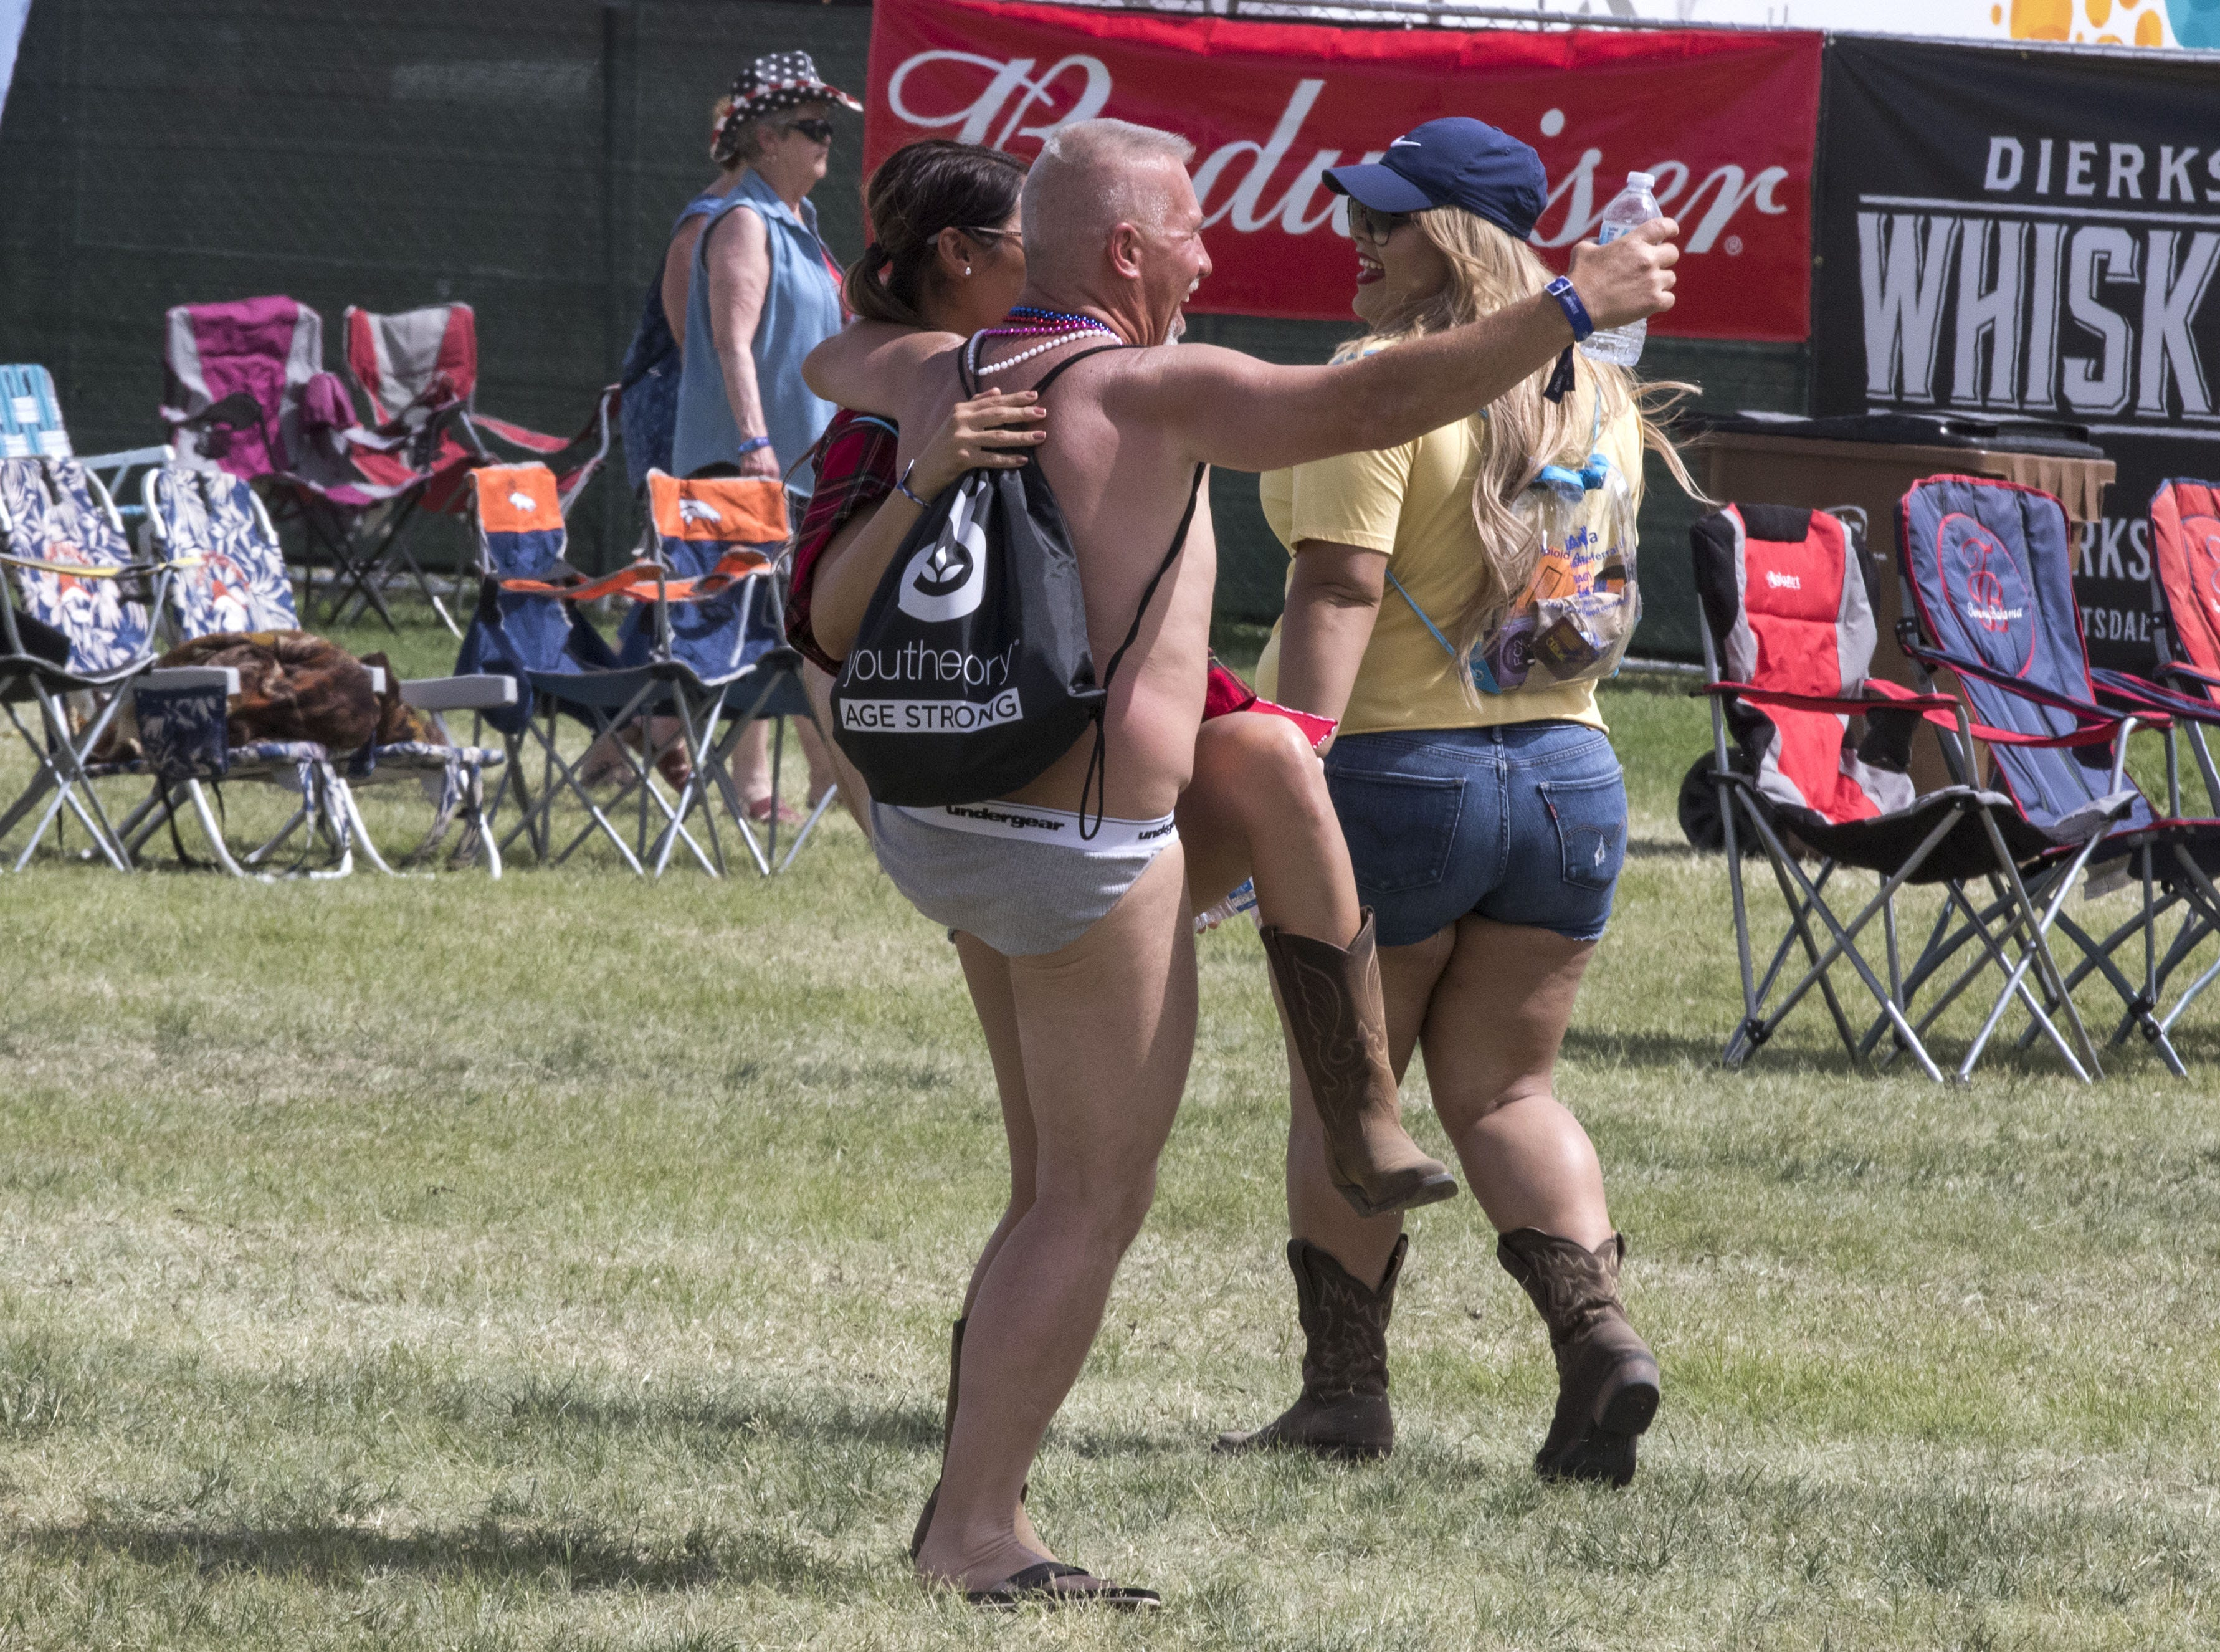 Donning only bikini briefs, flip flops and a backpack John Schmidt of Mesa parties it up with fans during Country Thunder Arizona Friday, April 12, 2019, in Florence, Arizona.